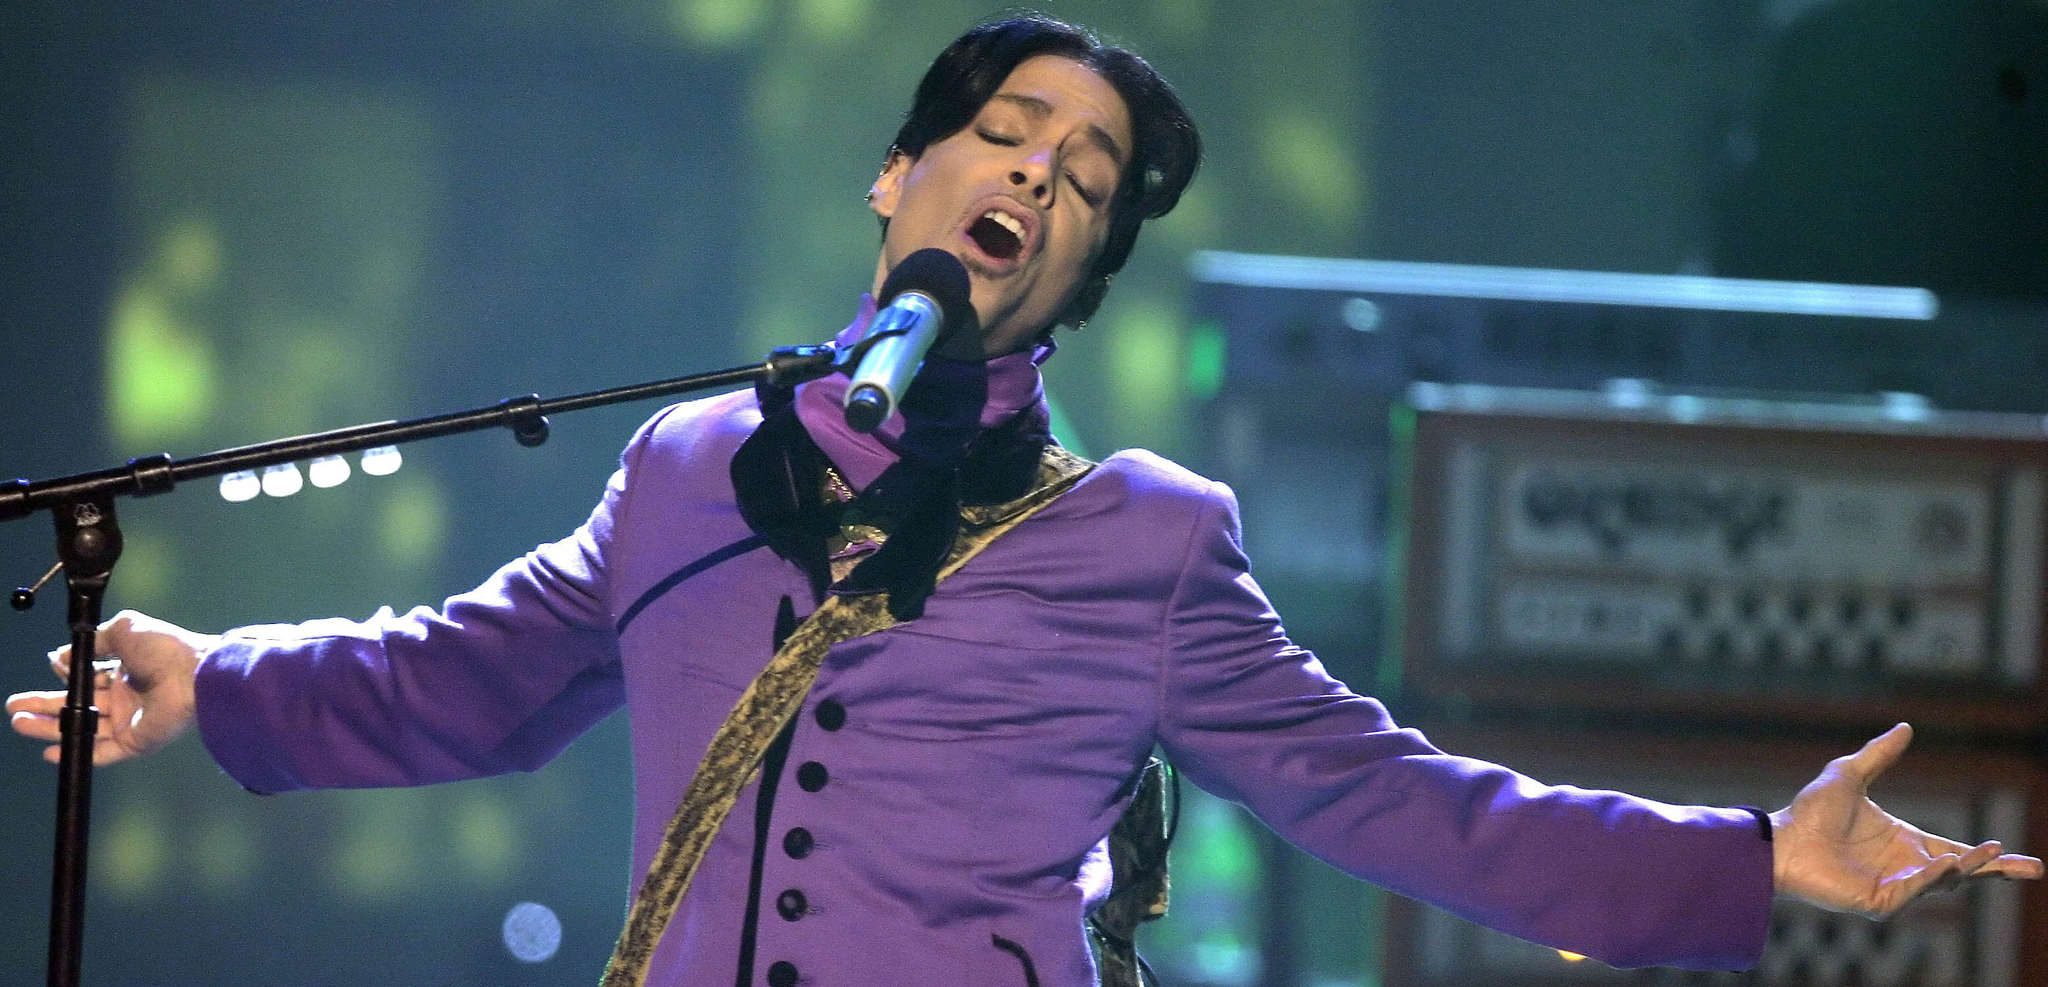 Prince performing at the sixth annual BET Awards in 2006 in Los Angeles.